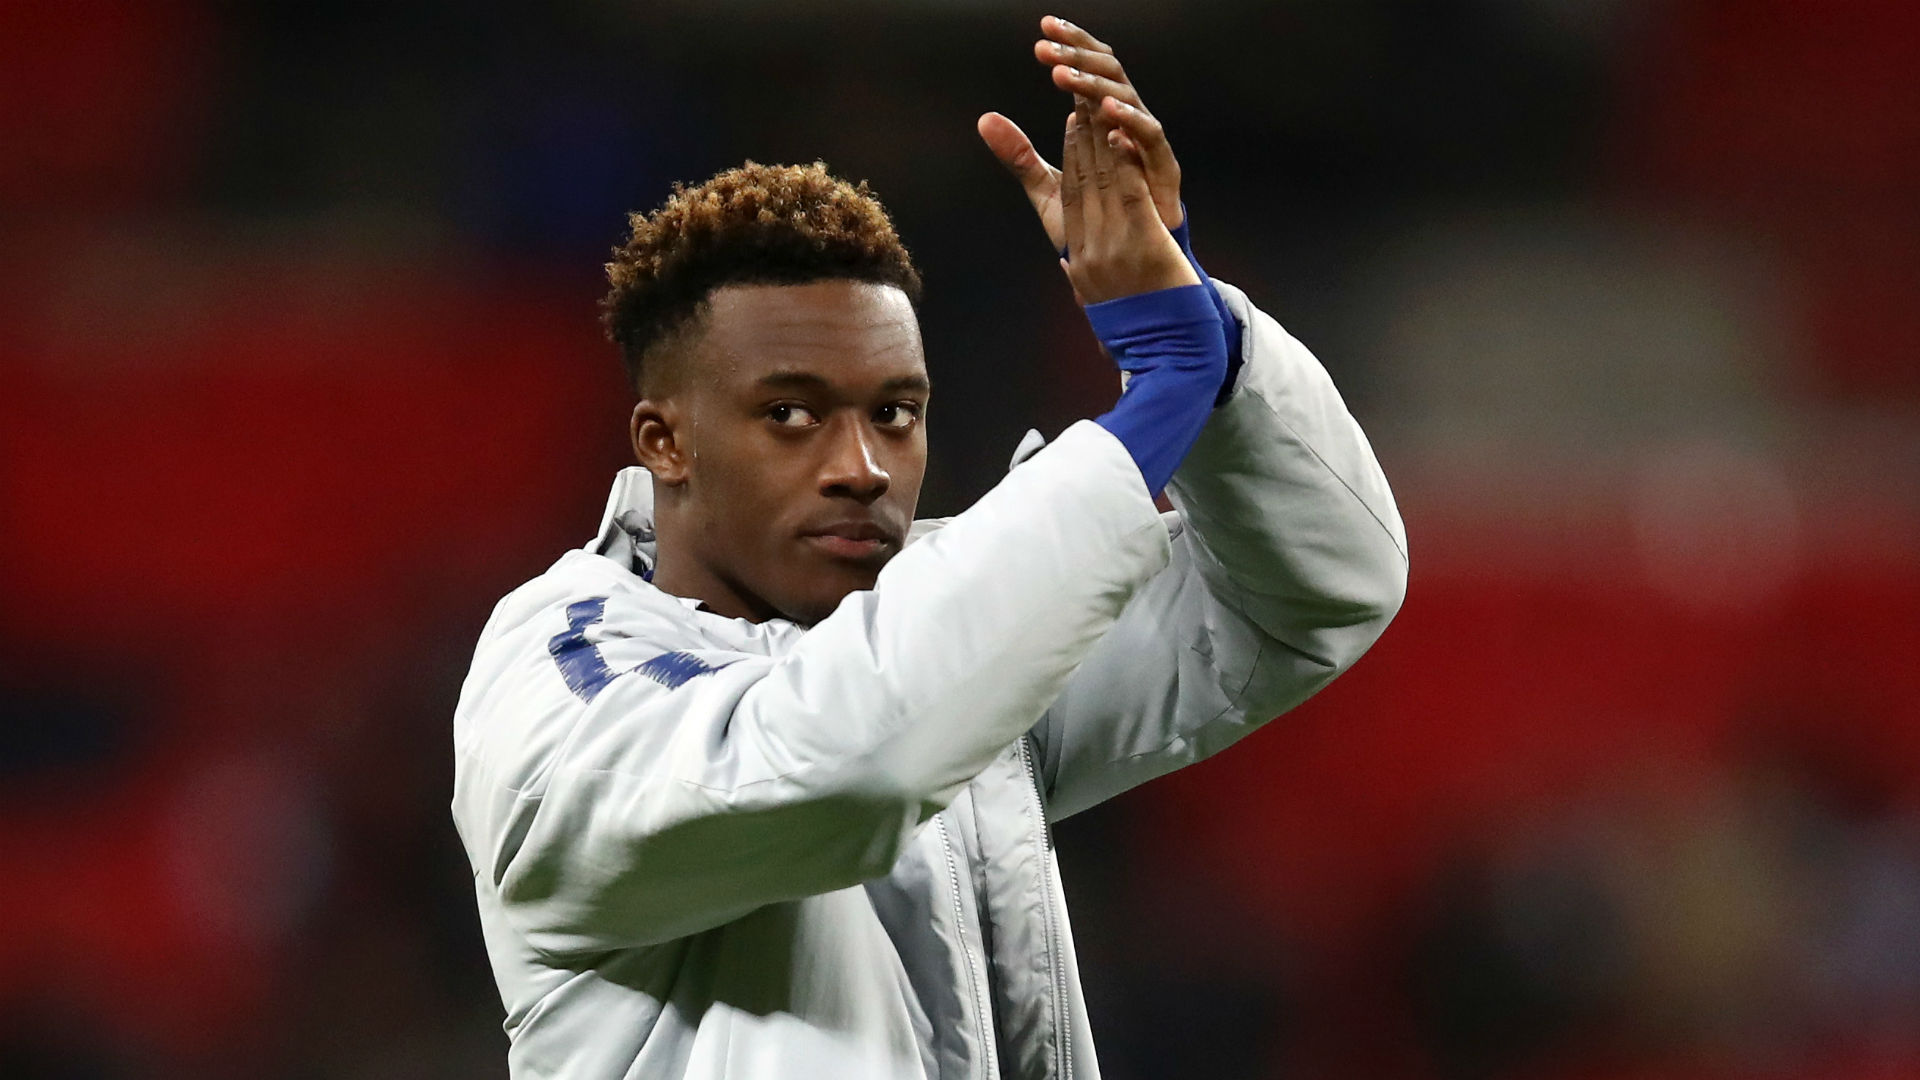 We are in talks with Chelsea – Salihamidzic reiterates interest in Hudson-Odoi